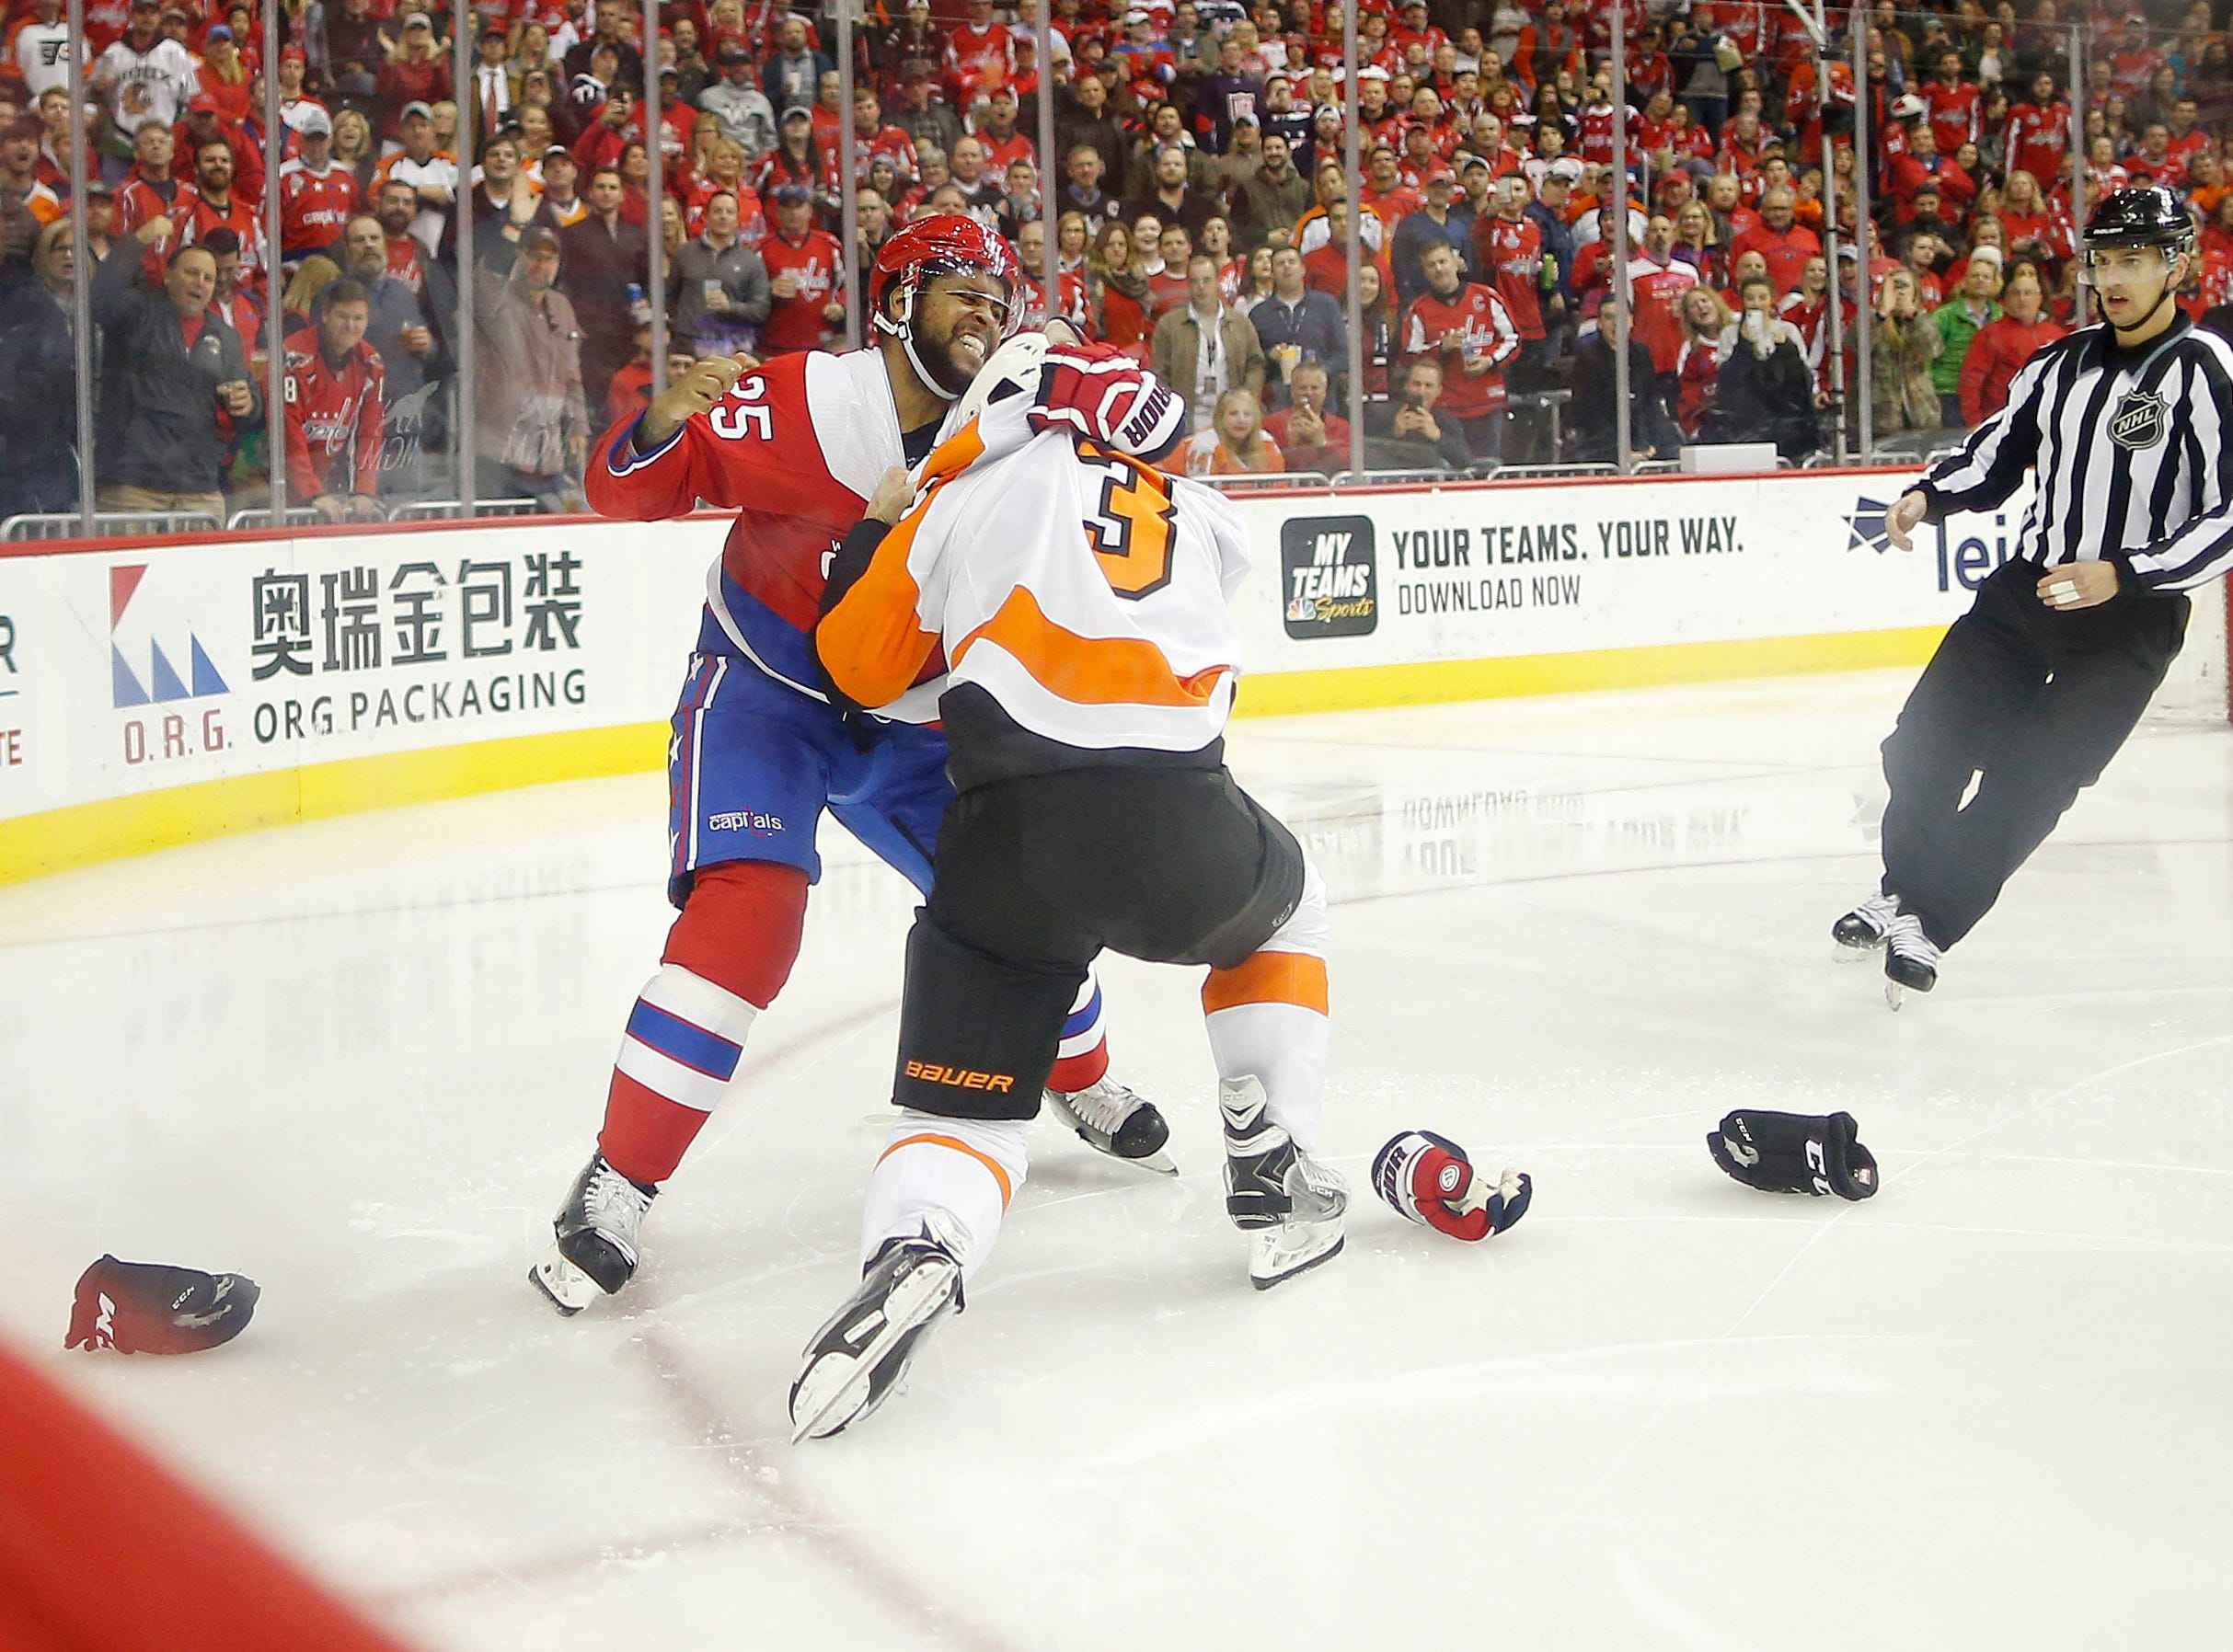 Jan. 8: Washington Capitals' Devante Smith-Pelly vs. Philadelphia Flyers' Radko Gudas.